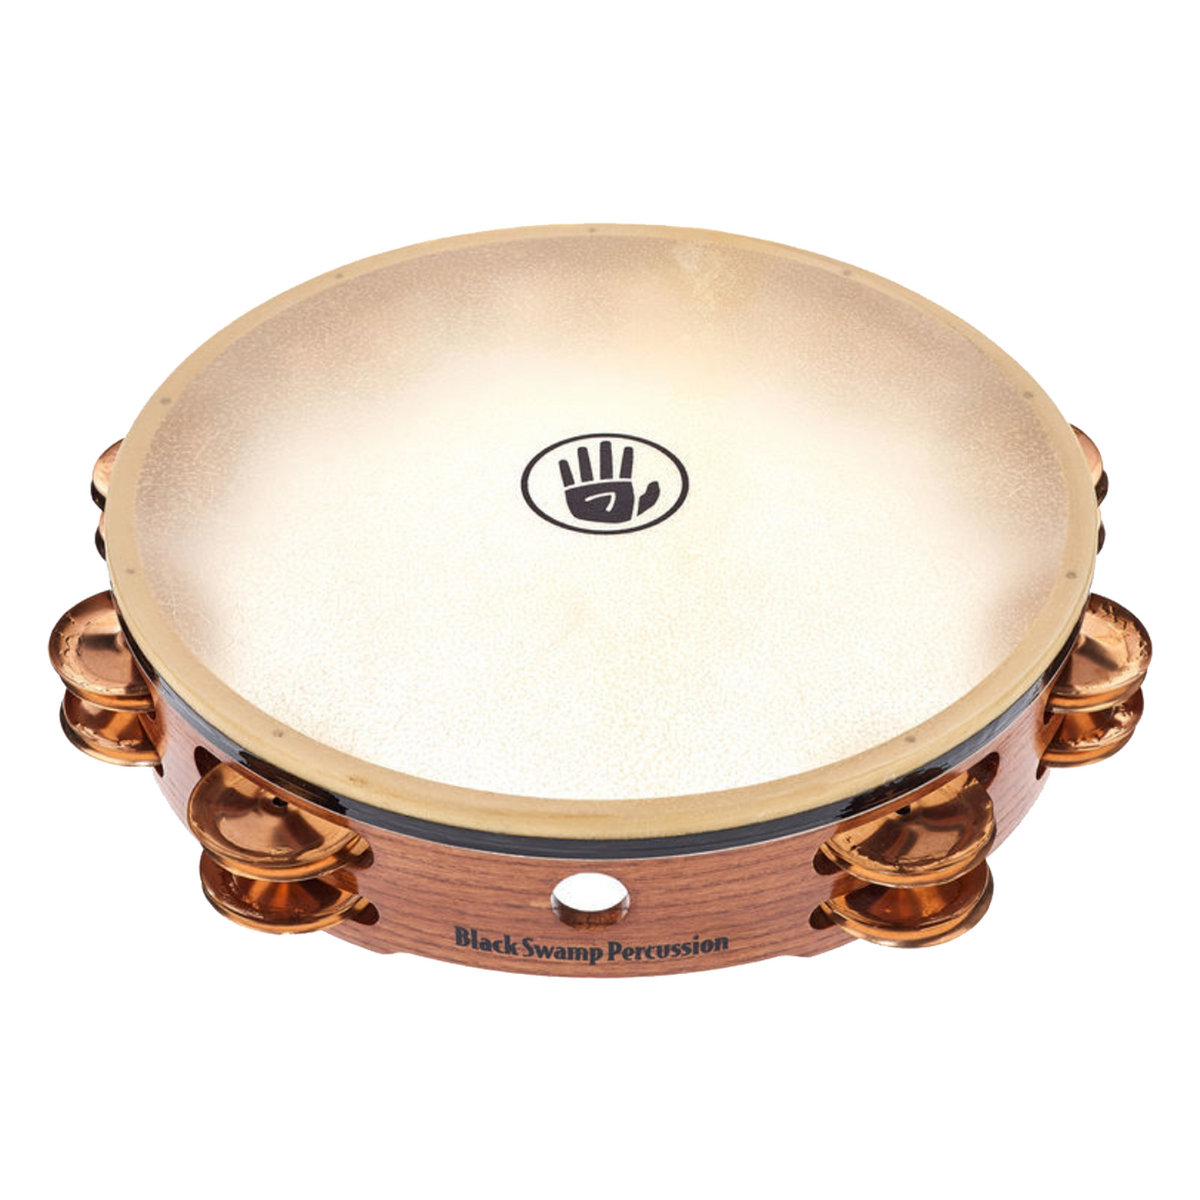 Black Swamp - Double Row Calf Head Tambourines-Percussion Accessories-Black Swamp-Beryllium Copper-Music Elements